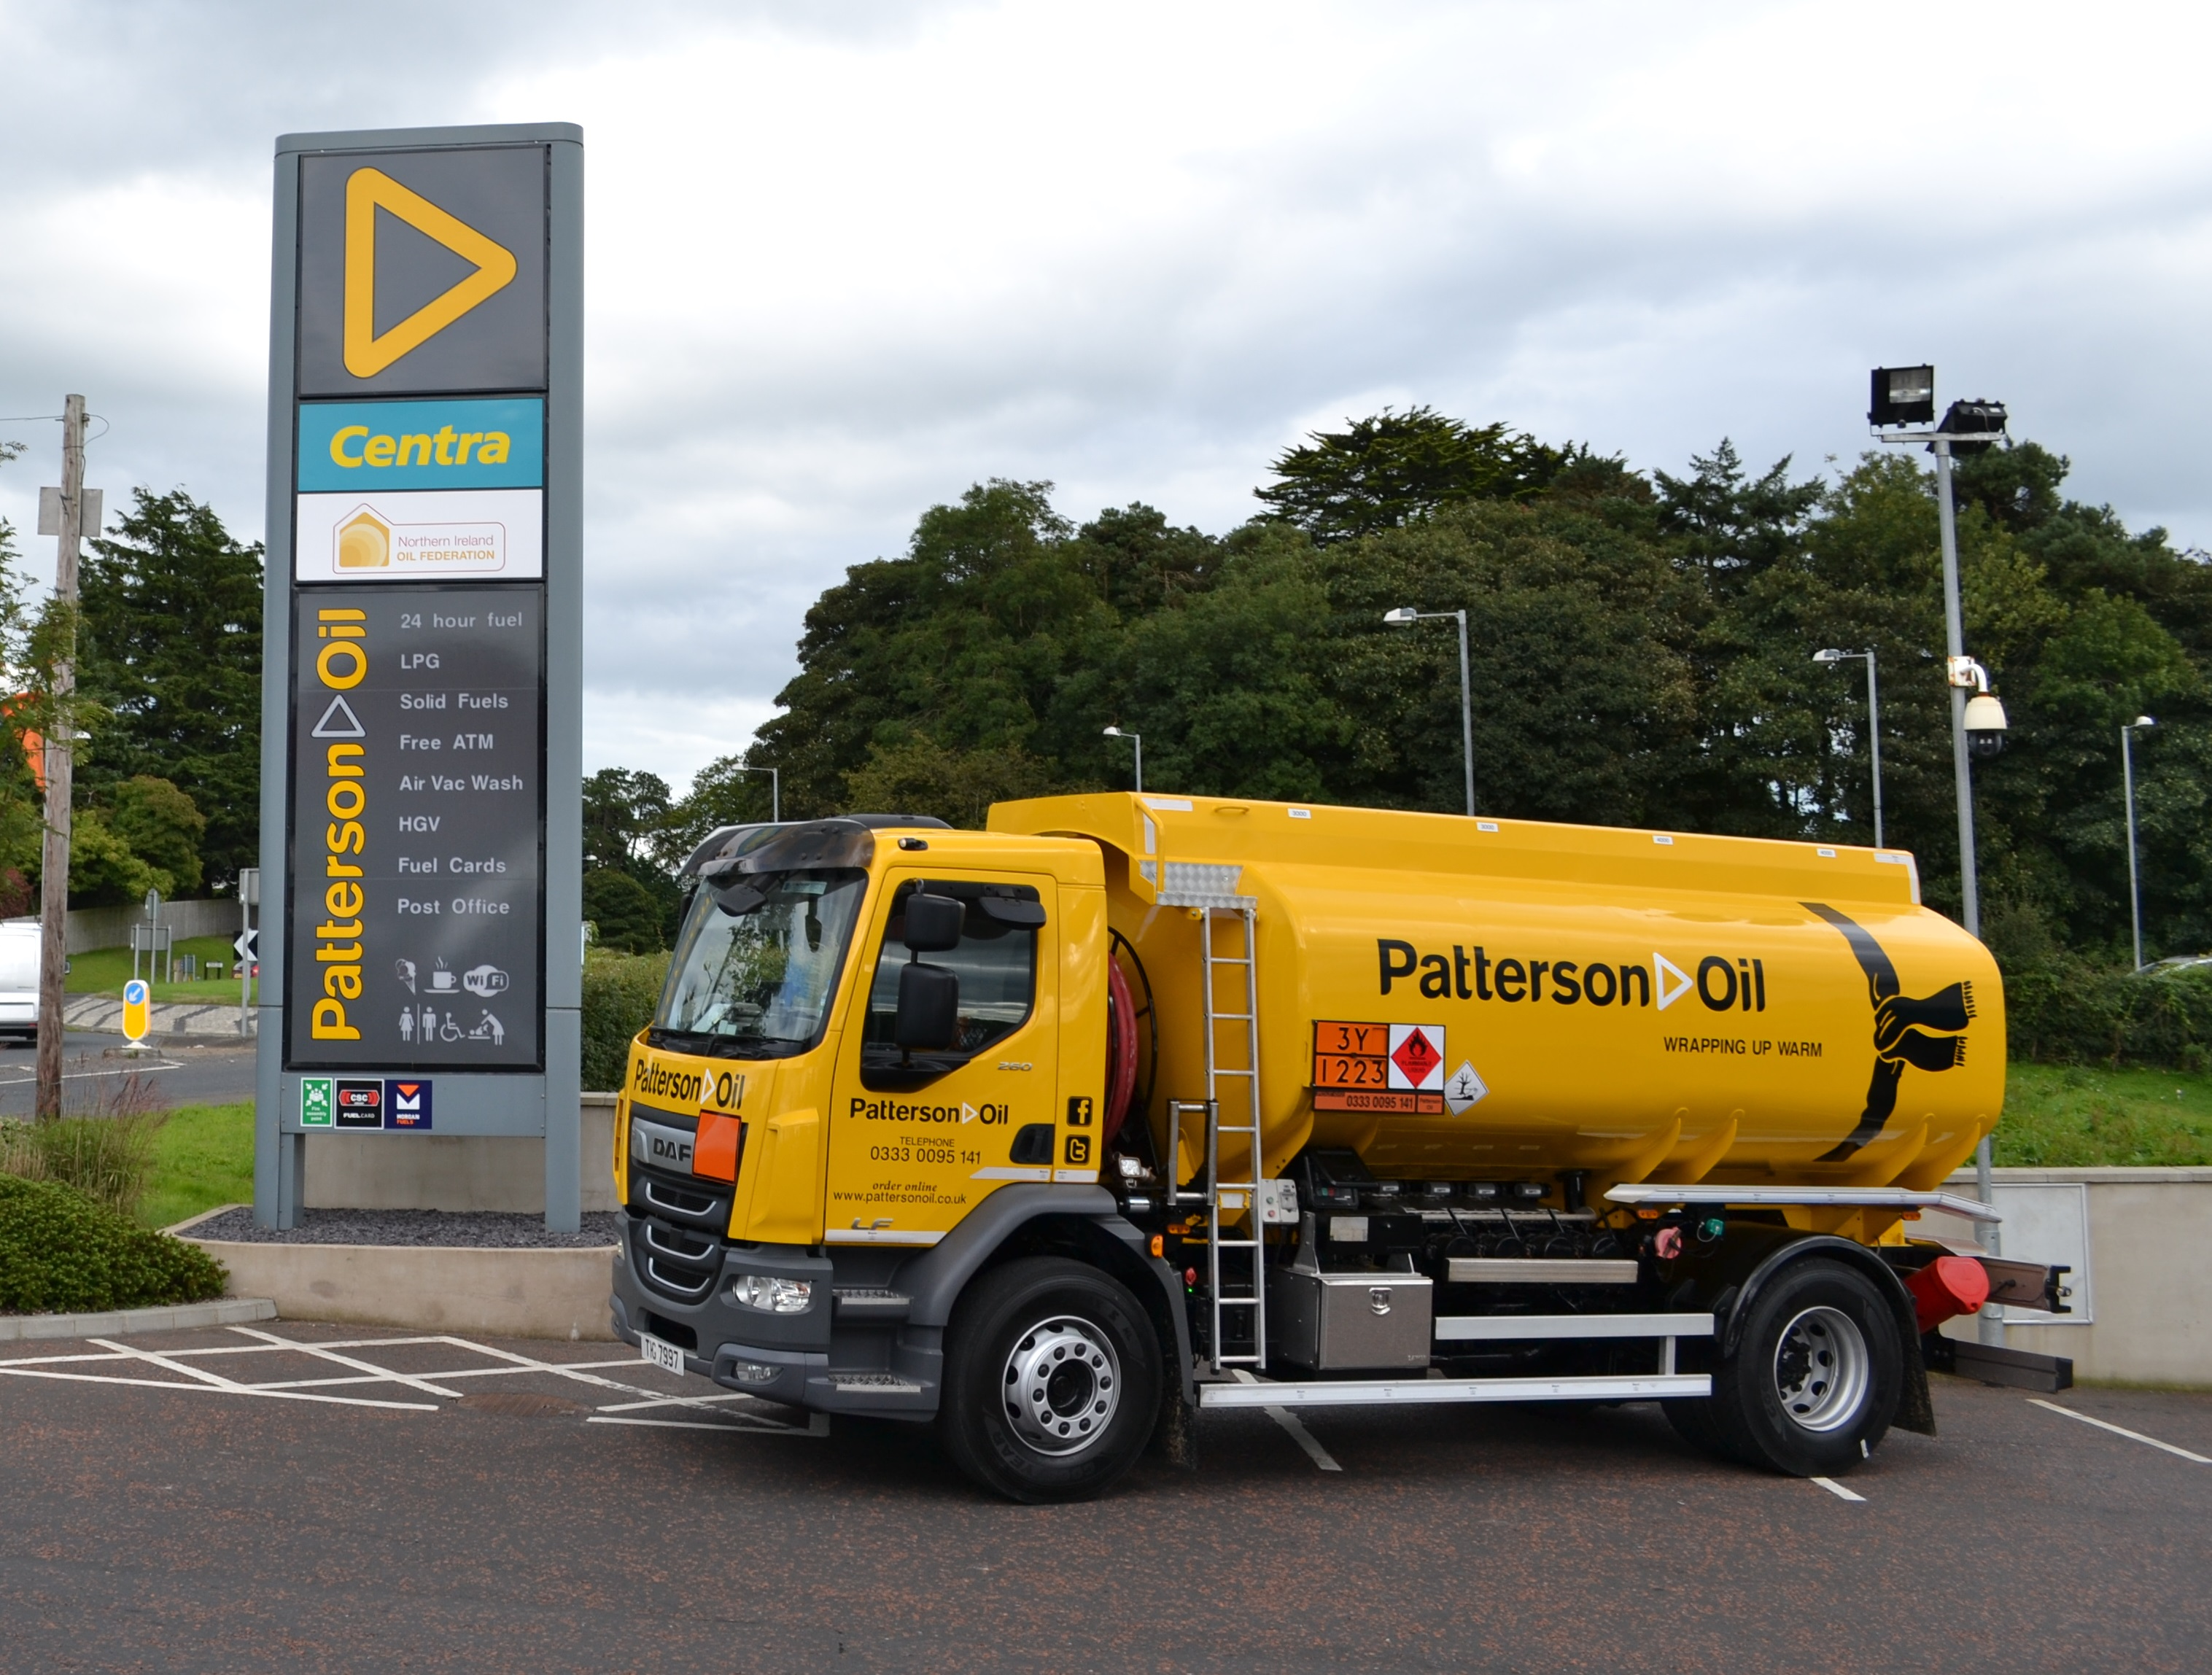 Patterson Oil | UK | Delivering quality oil to your door